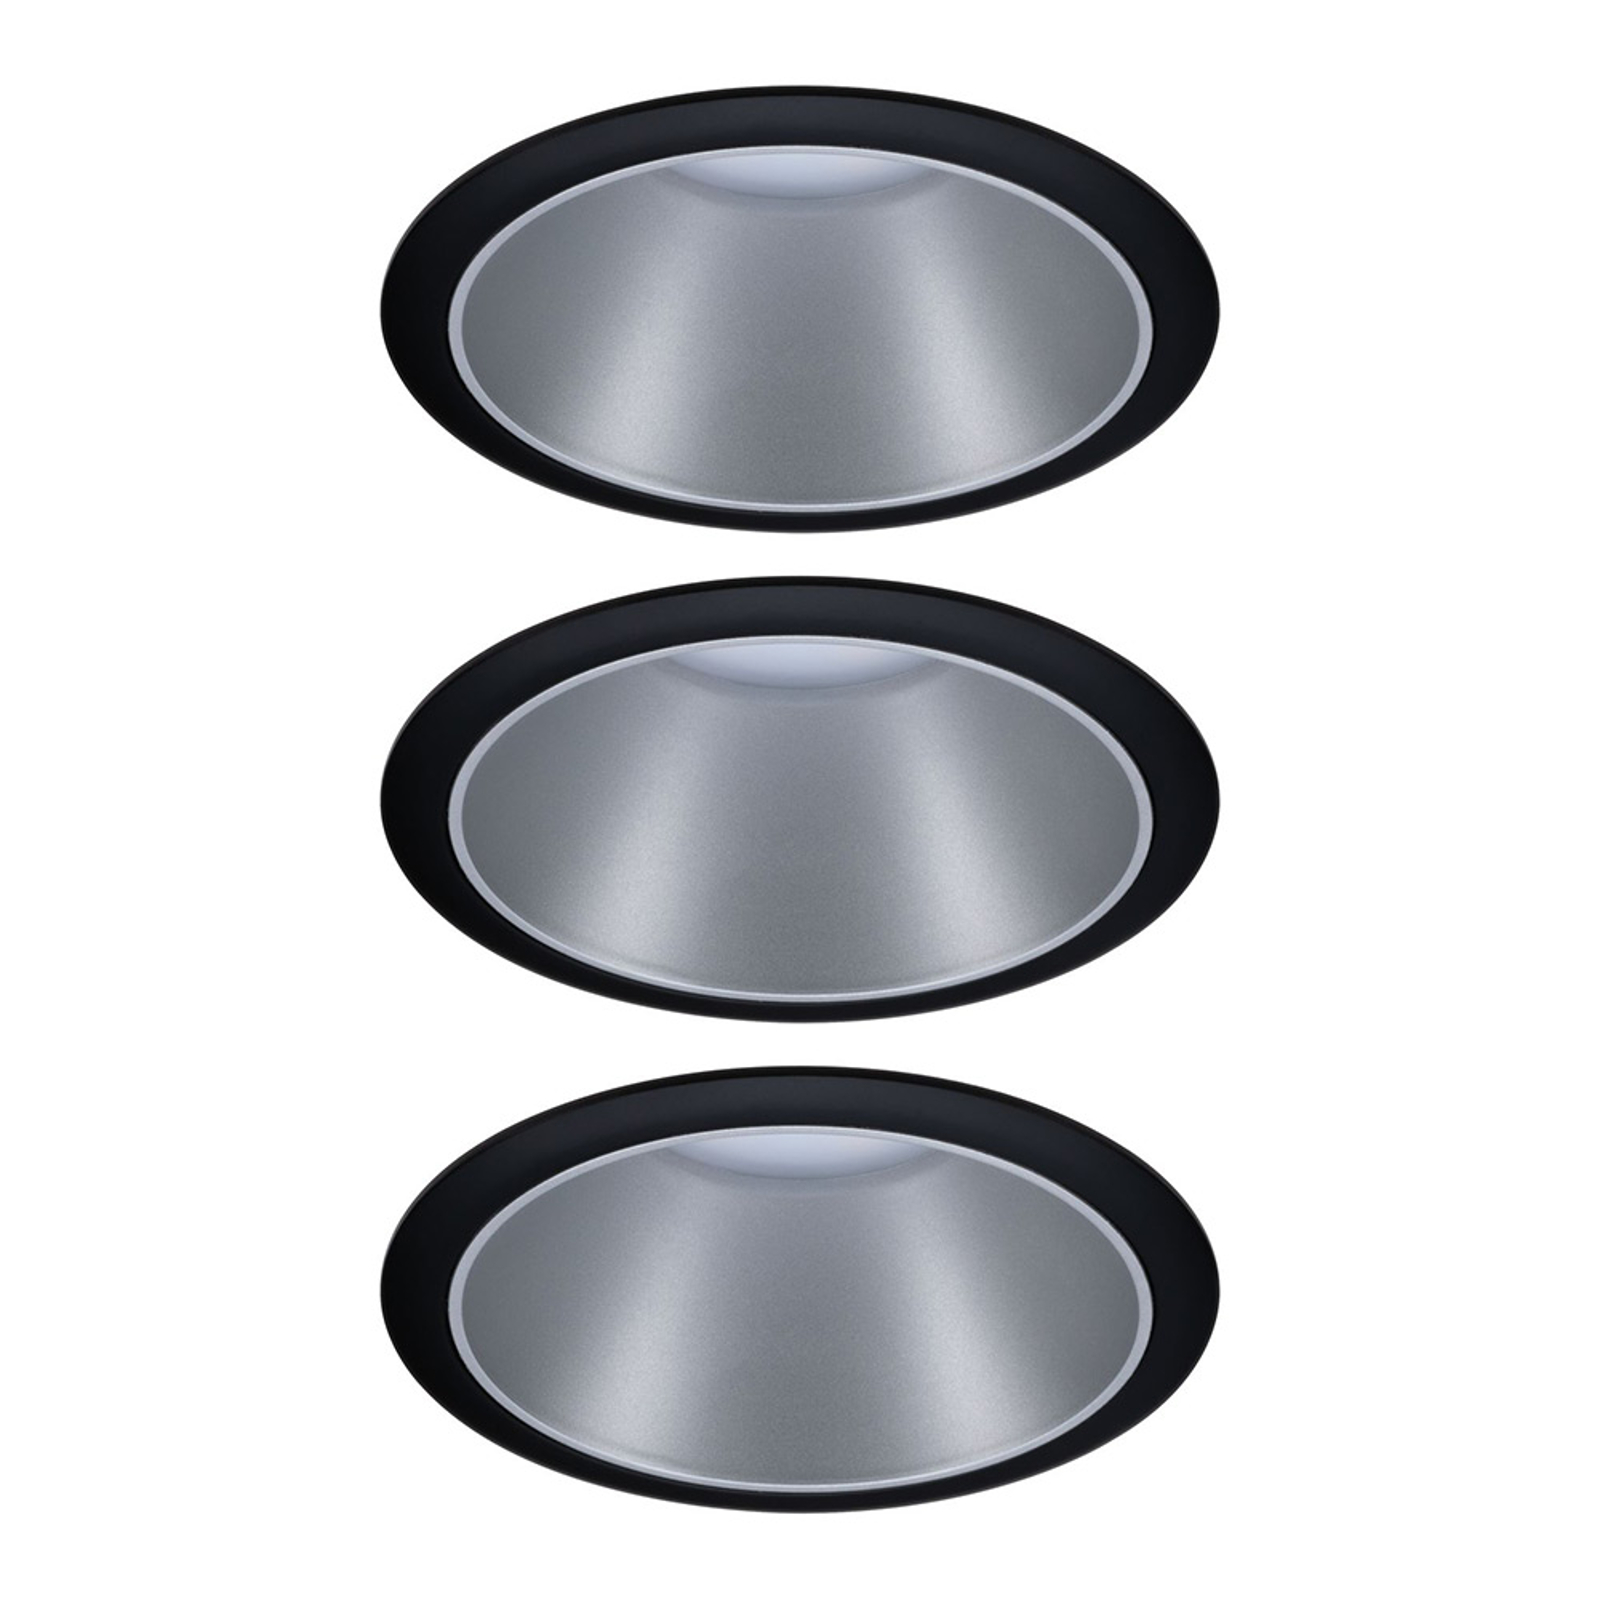 Paulmann Cole spot LED, argenté-noir lot de 3